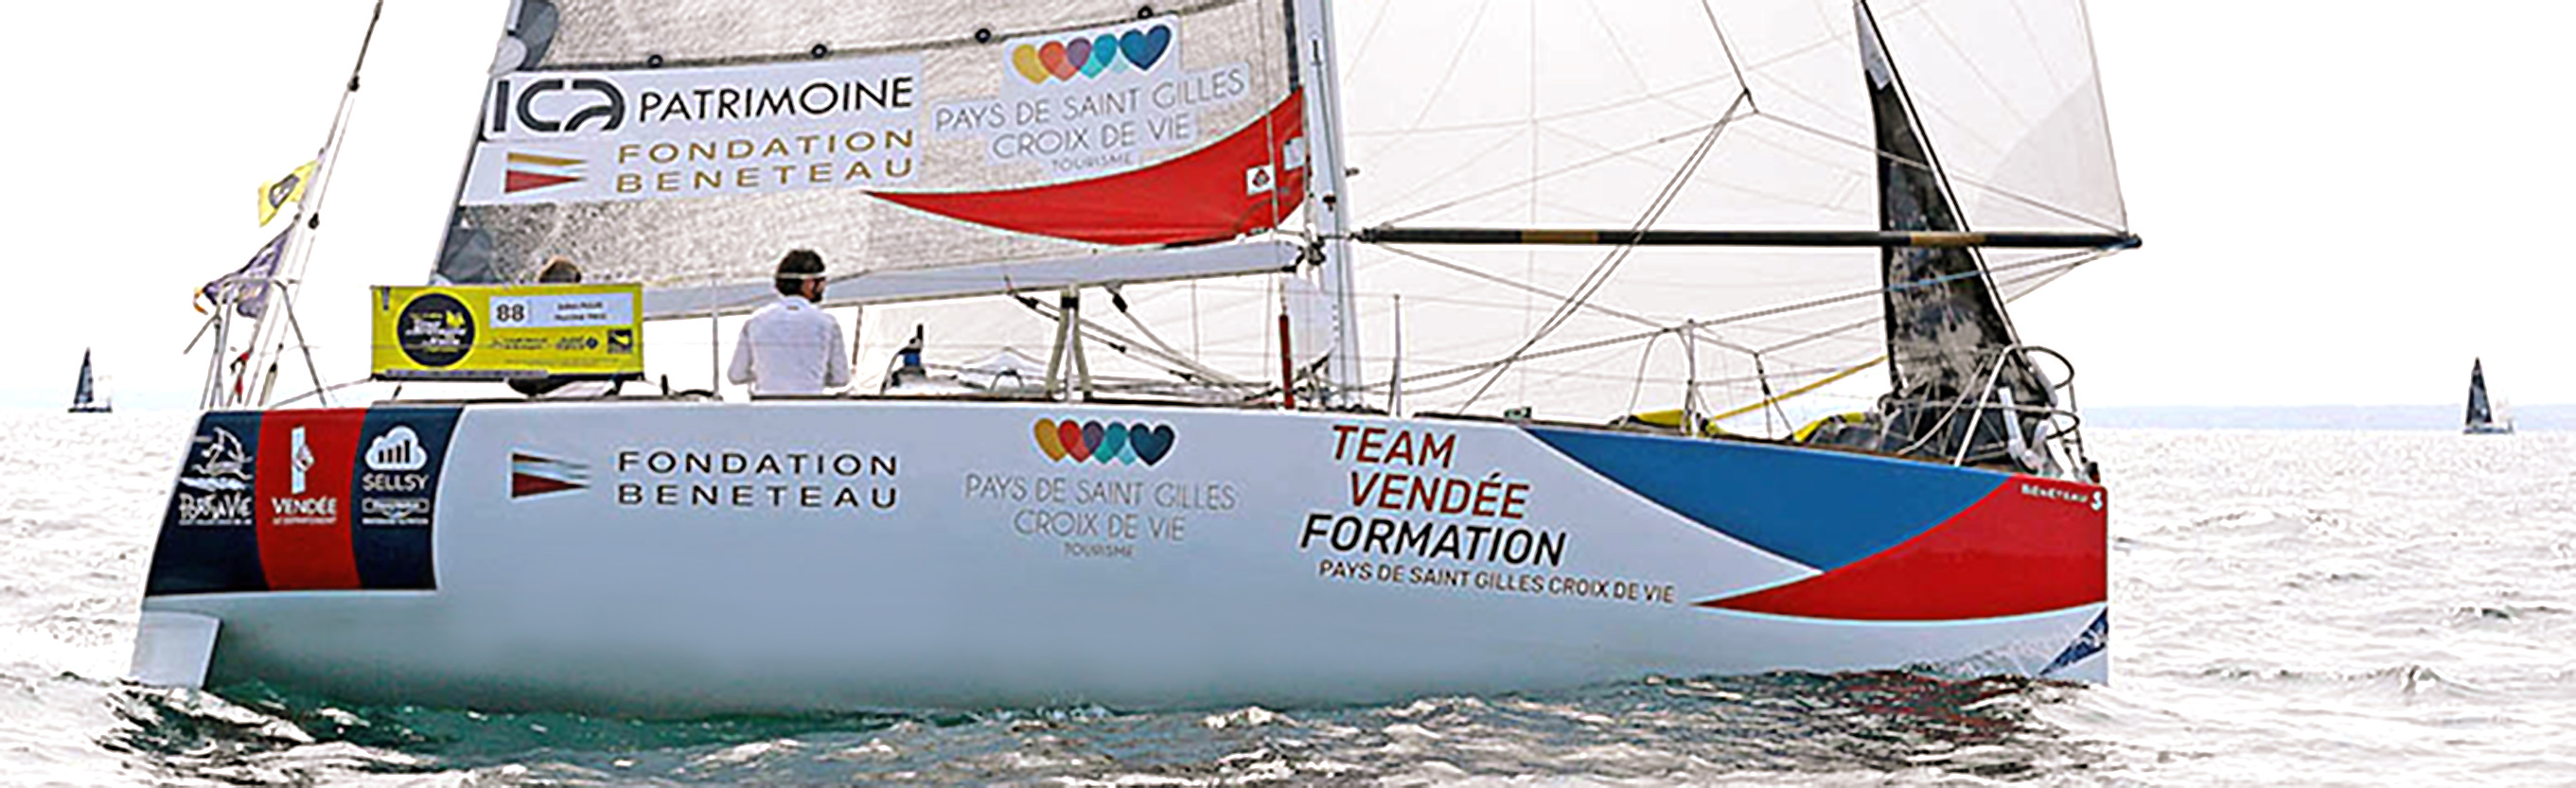 team vendee.jpg